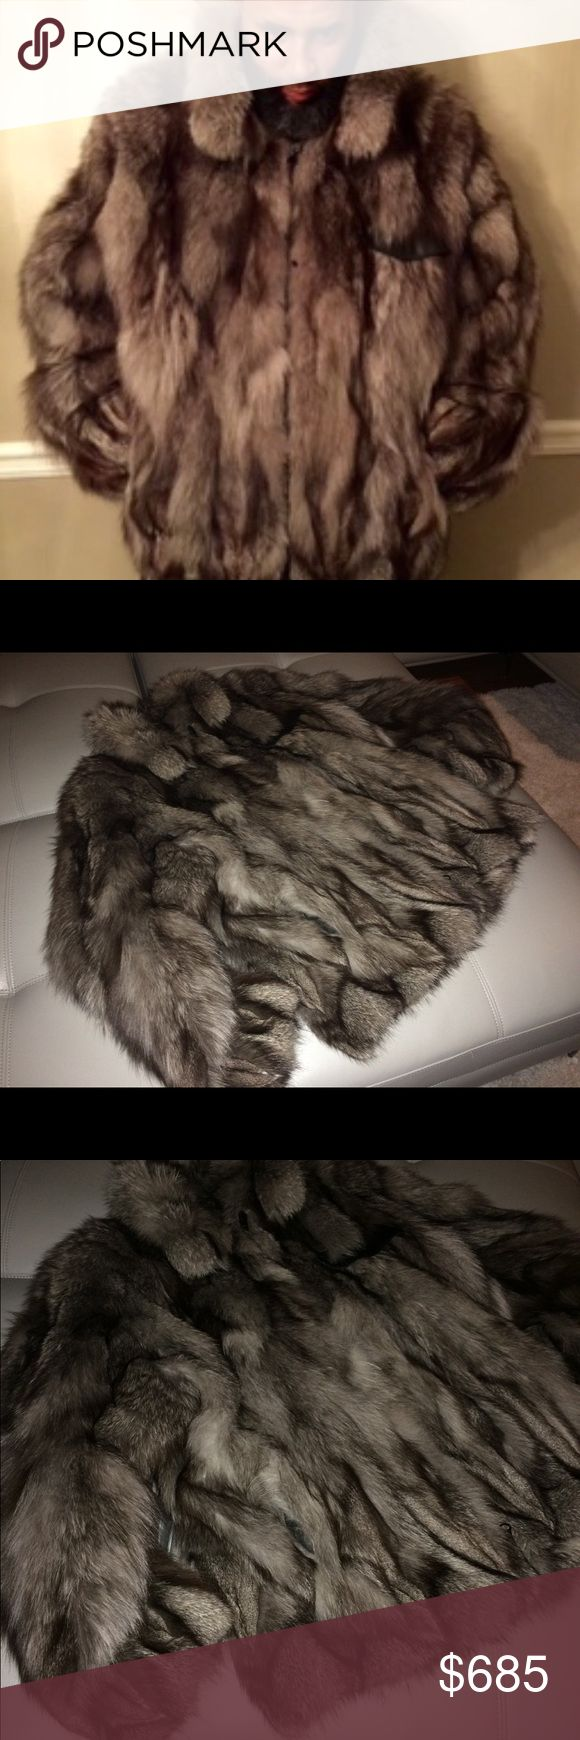 Fox Fur – Great Gift 4 hubby, boyfriend or U. Get this coat at an unbeatable price before it changes as it gets colder. Beautiful, plush and soft Men…